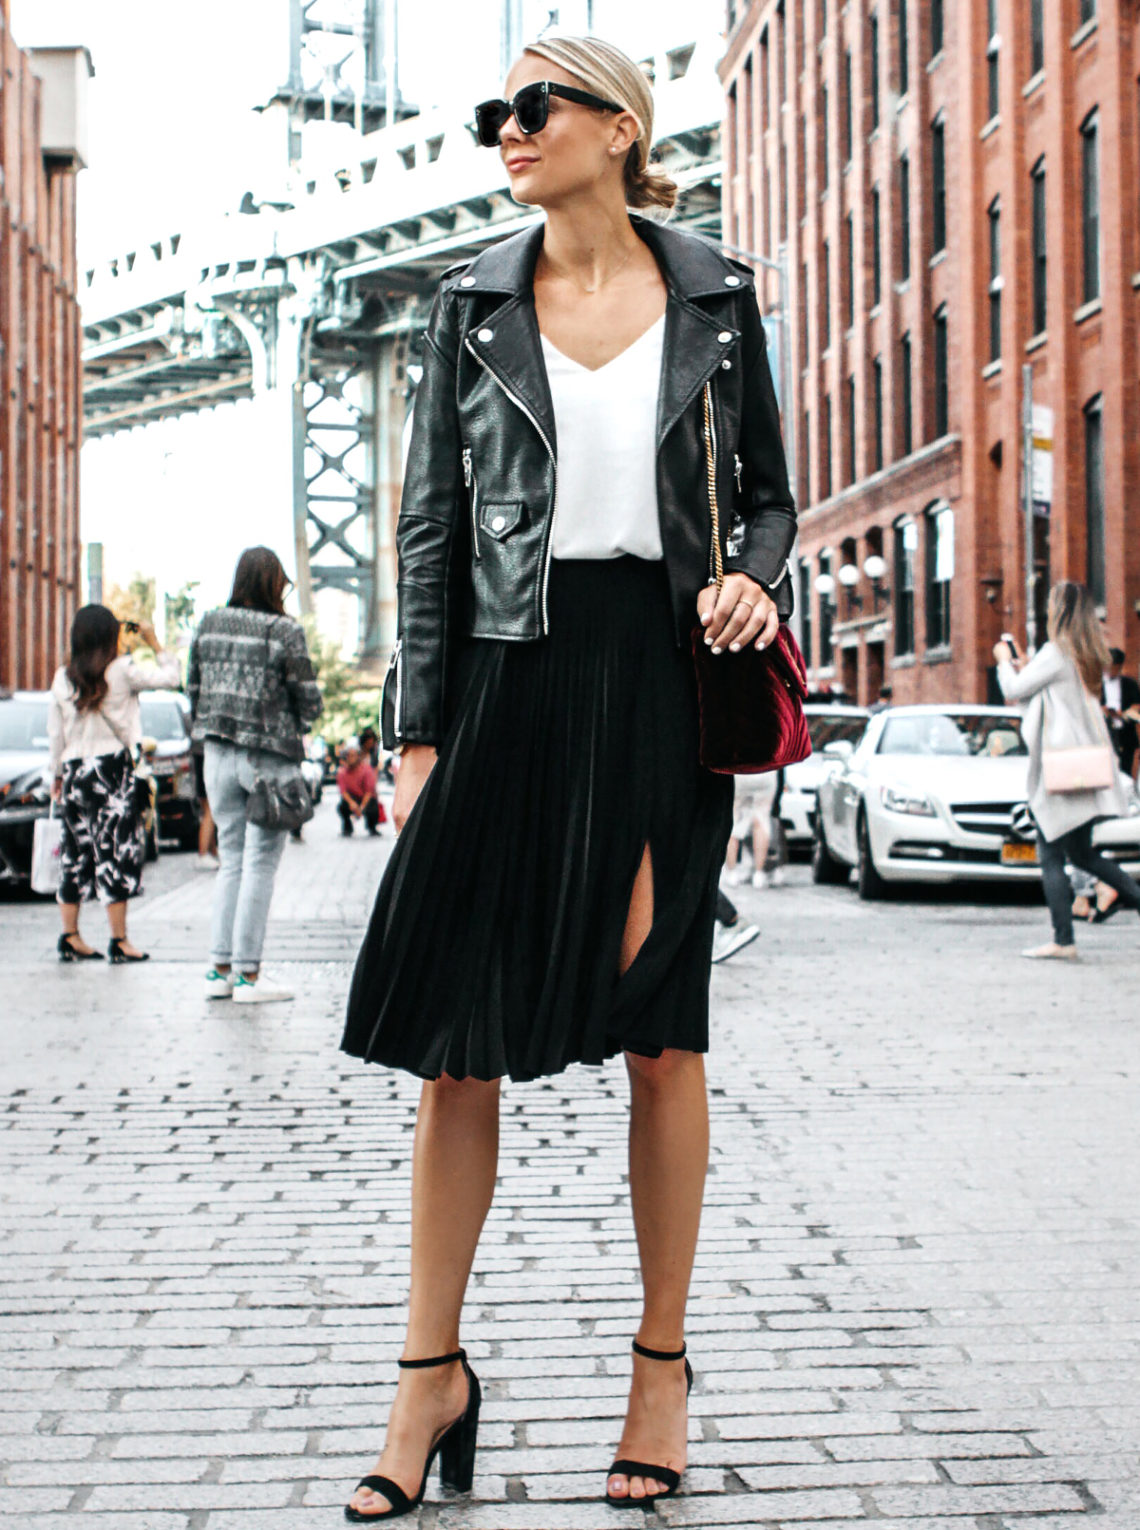 Blonde Woman Wearing Black Leather Jacket Black Pleated Midi Skirt Saint Laurent Burgundy Velvet Bag Black Ankle Strap Heeled Sandals Fashion Jackson Dallas Blogger Fashion Blogger Street Style NYFW Dumbo Bridge